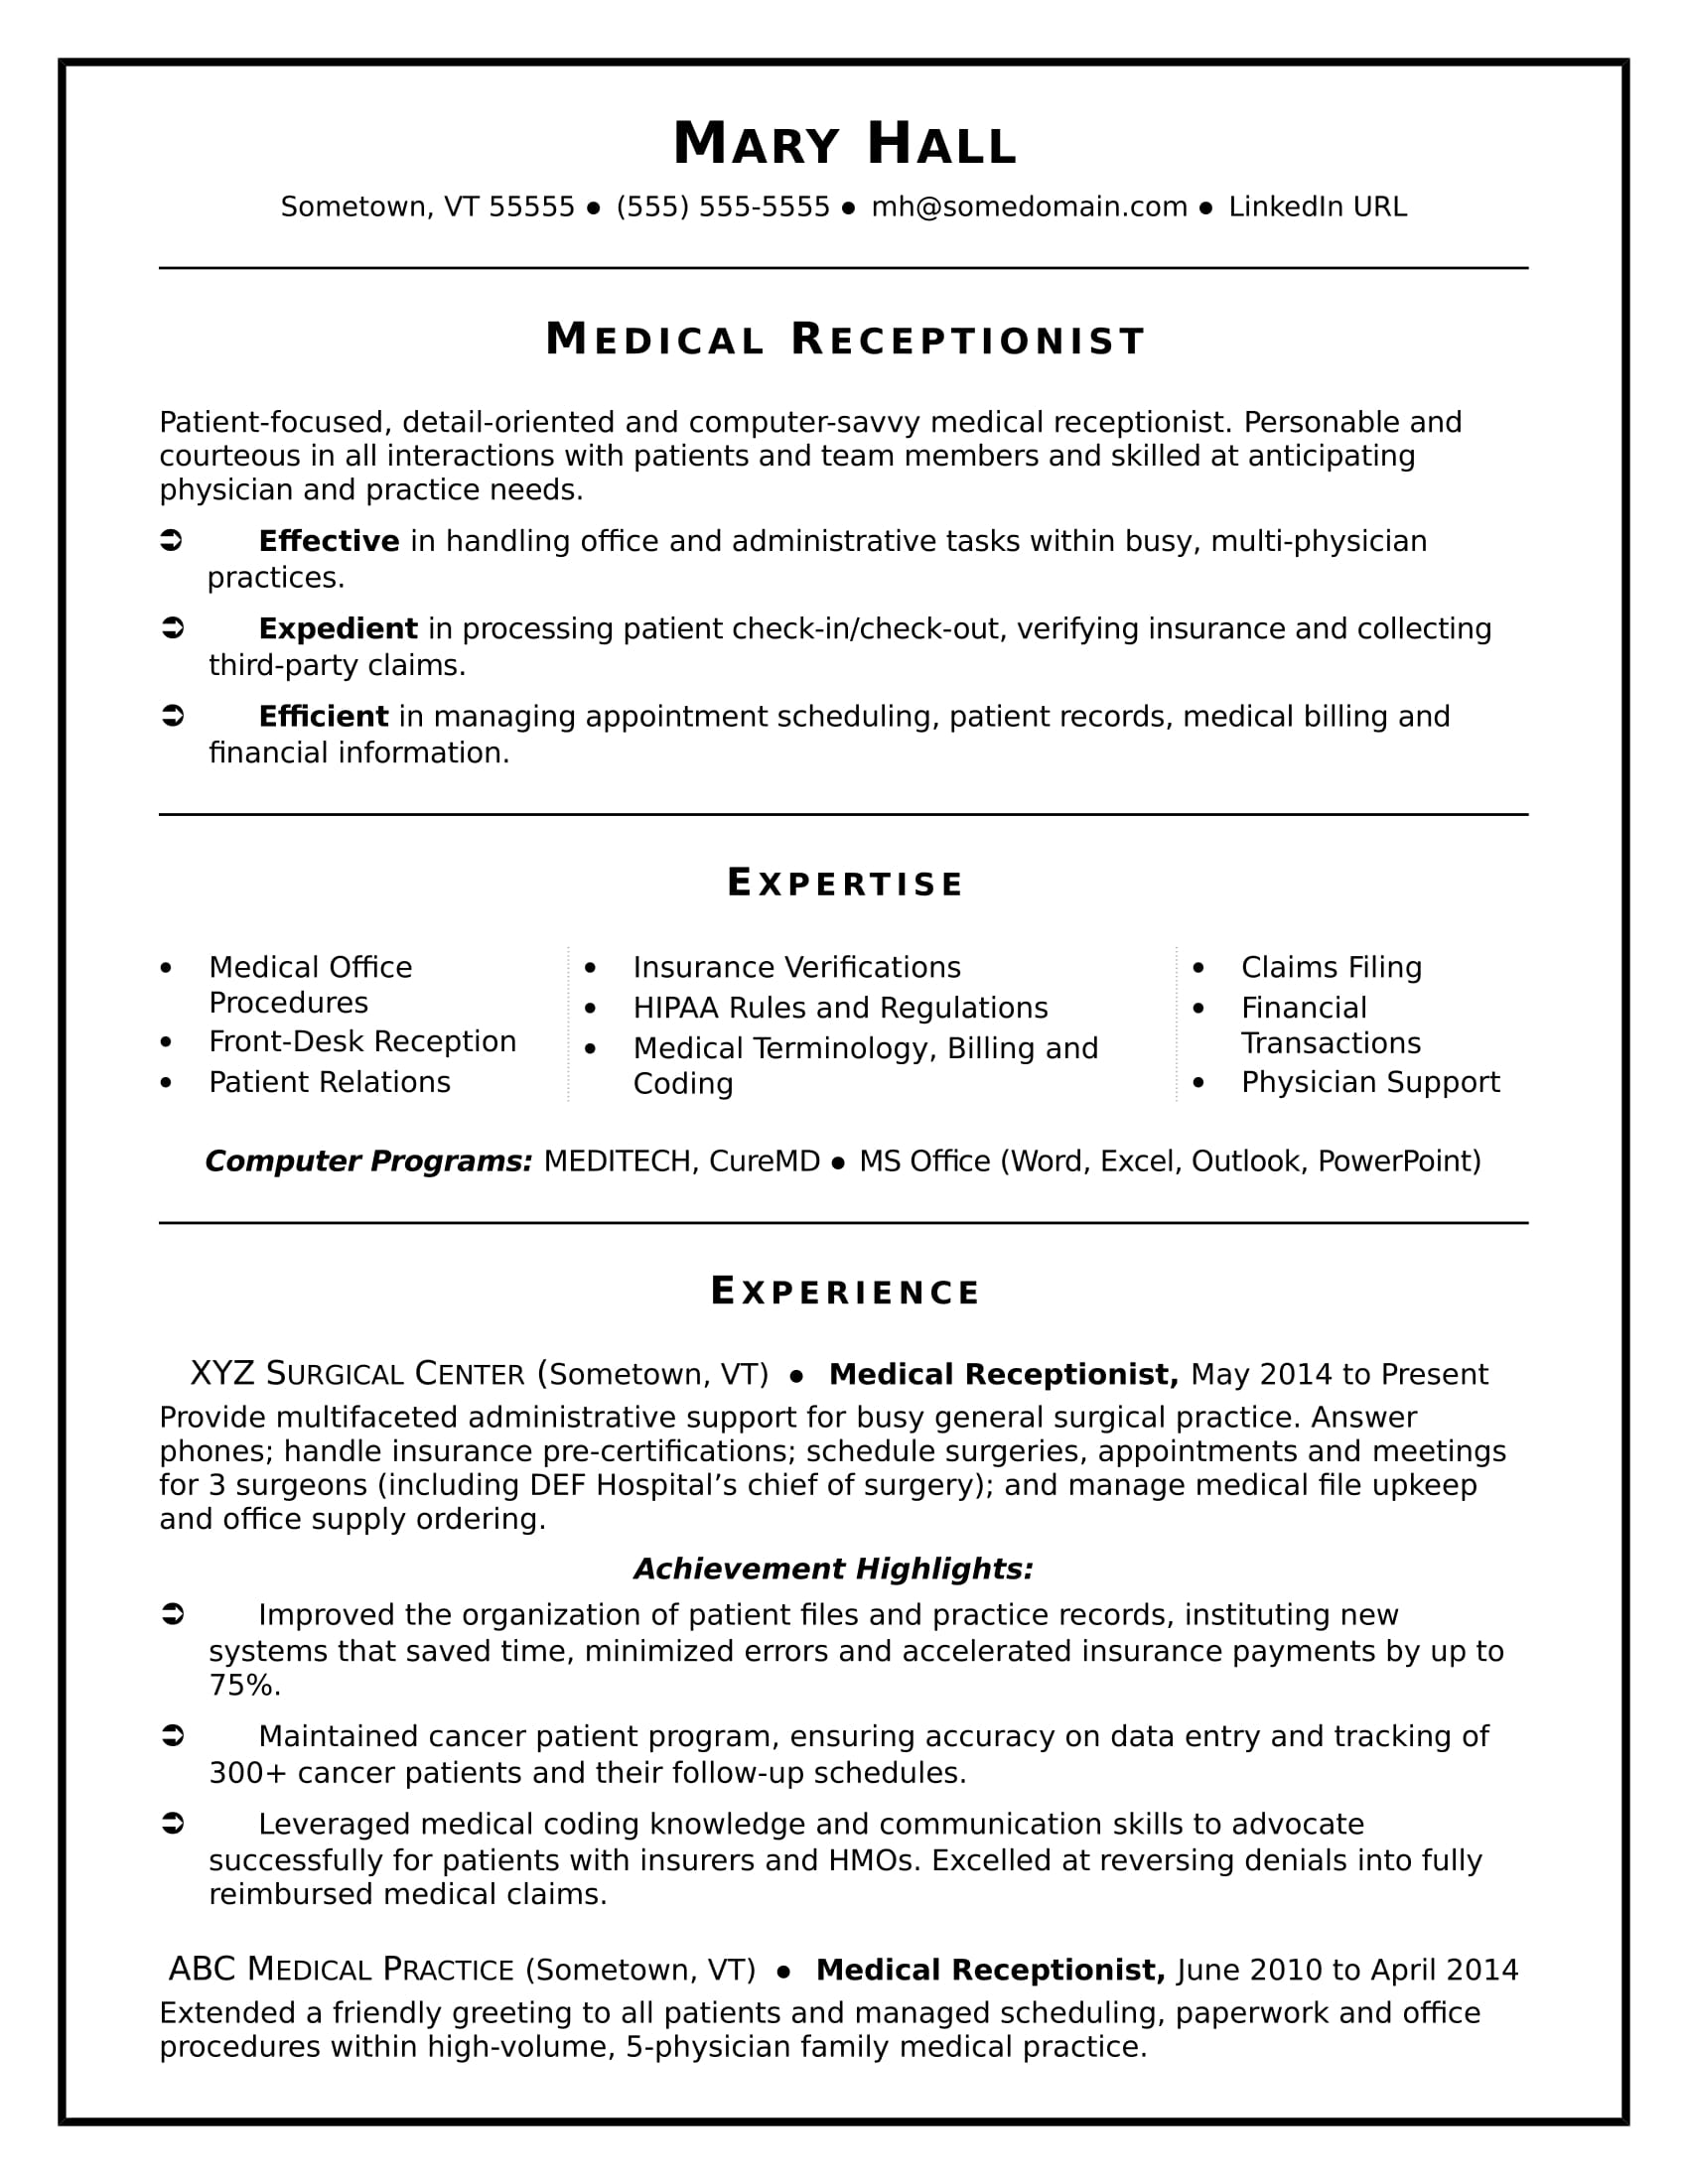 medical receptionist resume sample - Medical Receptionist Resume